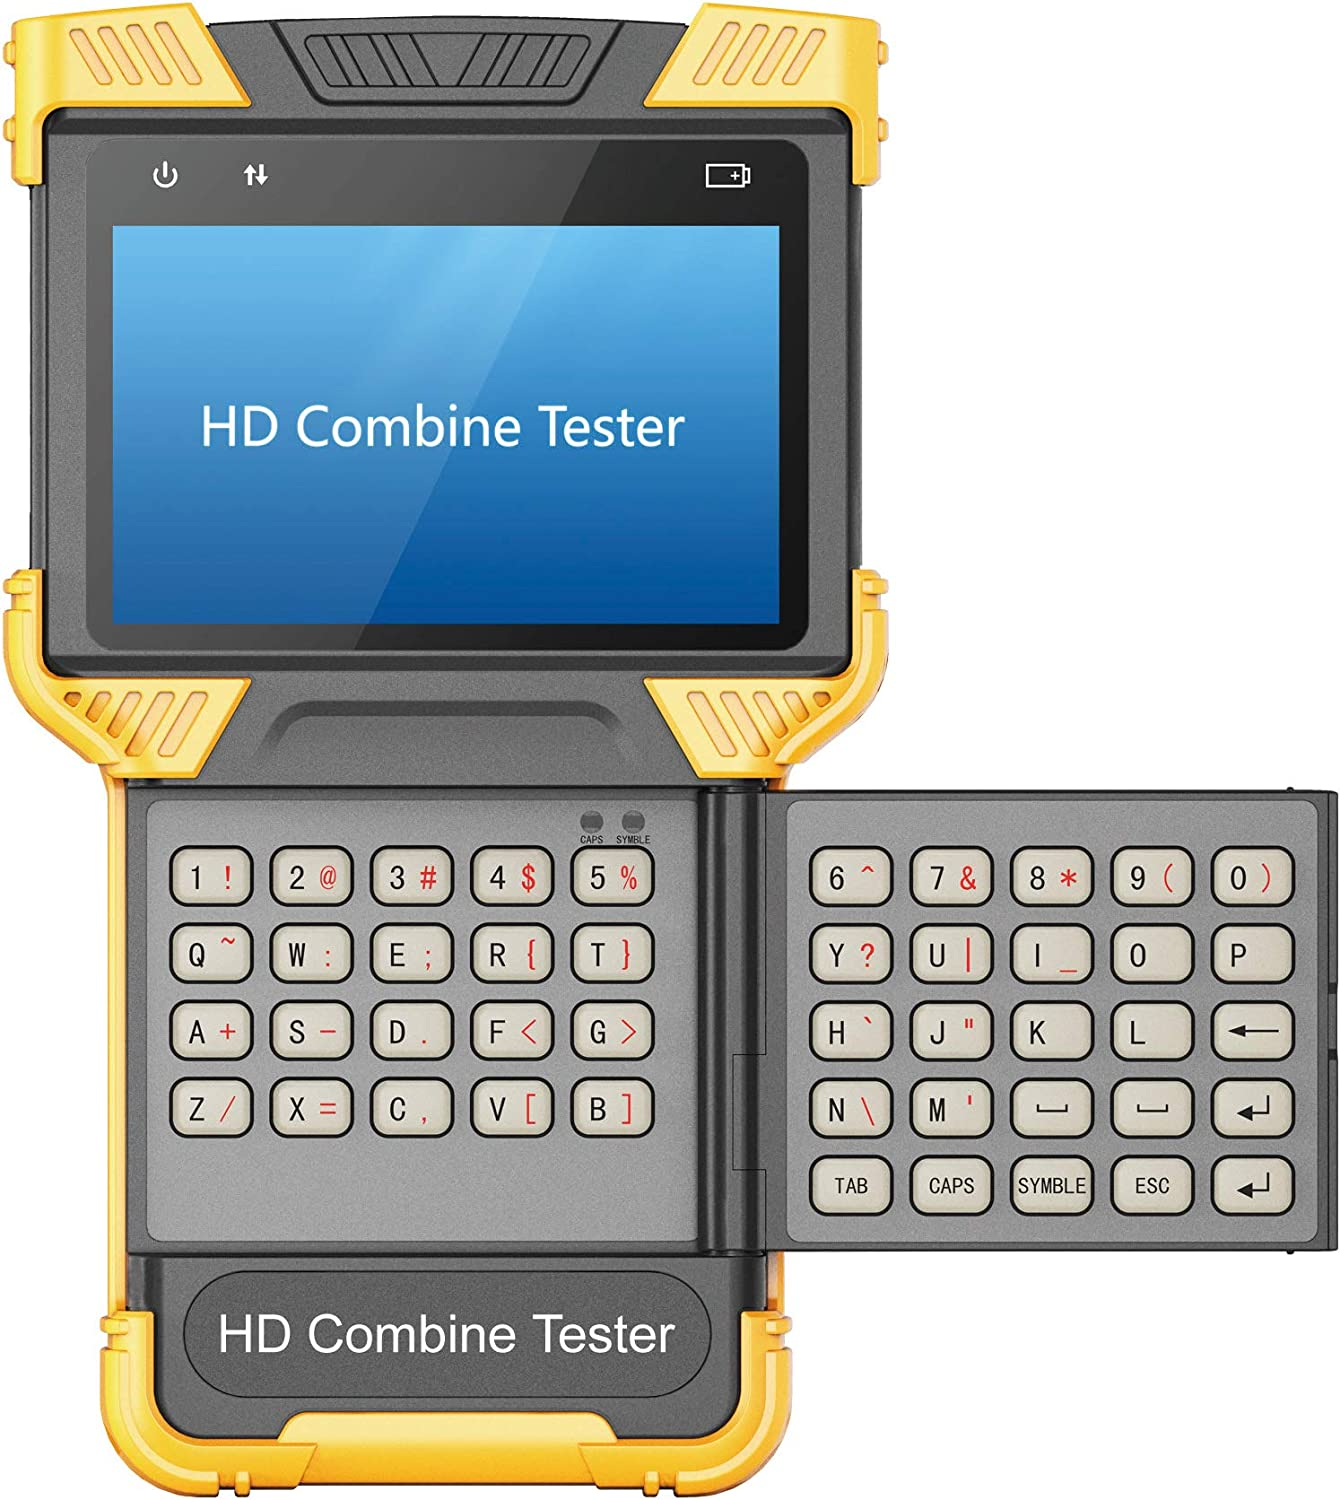 """5 in 1 CCTV Tester Support Upt to 4K IP Camera & Up to 8 Megapixel AHD, TVI, CVI & CVBS Analog Camera, Security Video Monitor with 4"""" Screen, Keypad, POE Out, WiFi Test, Onvif, PTZ"""